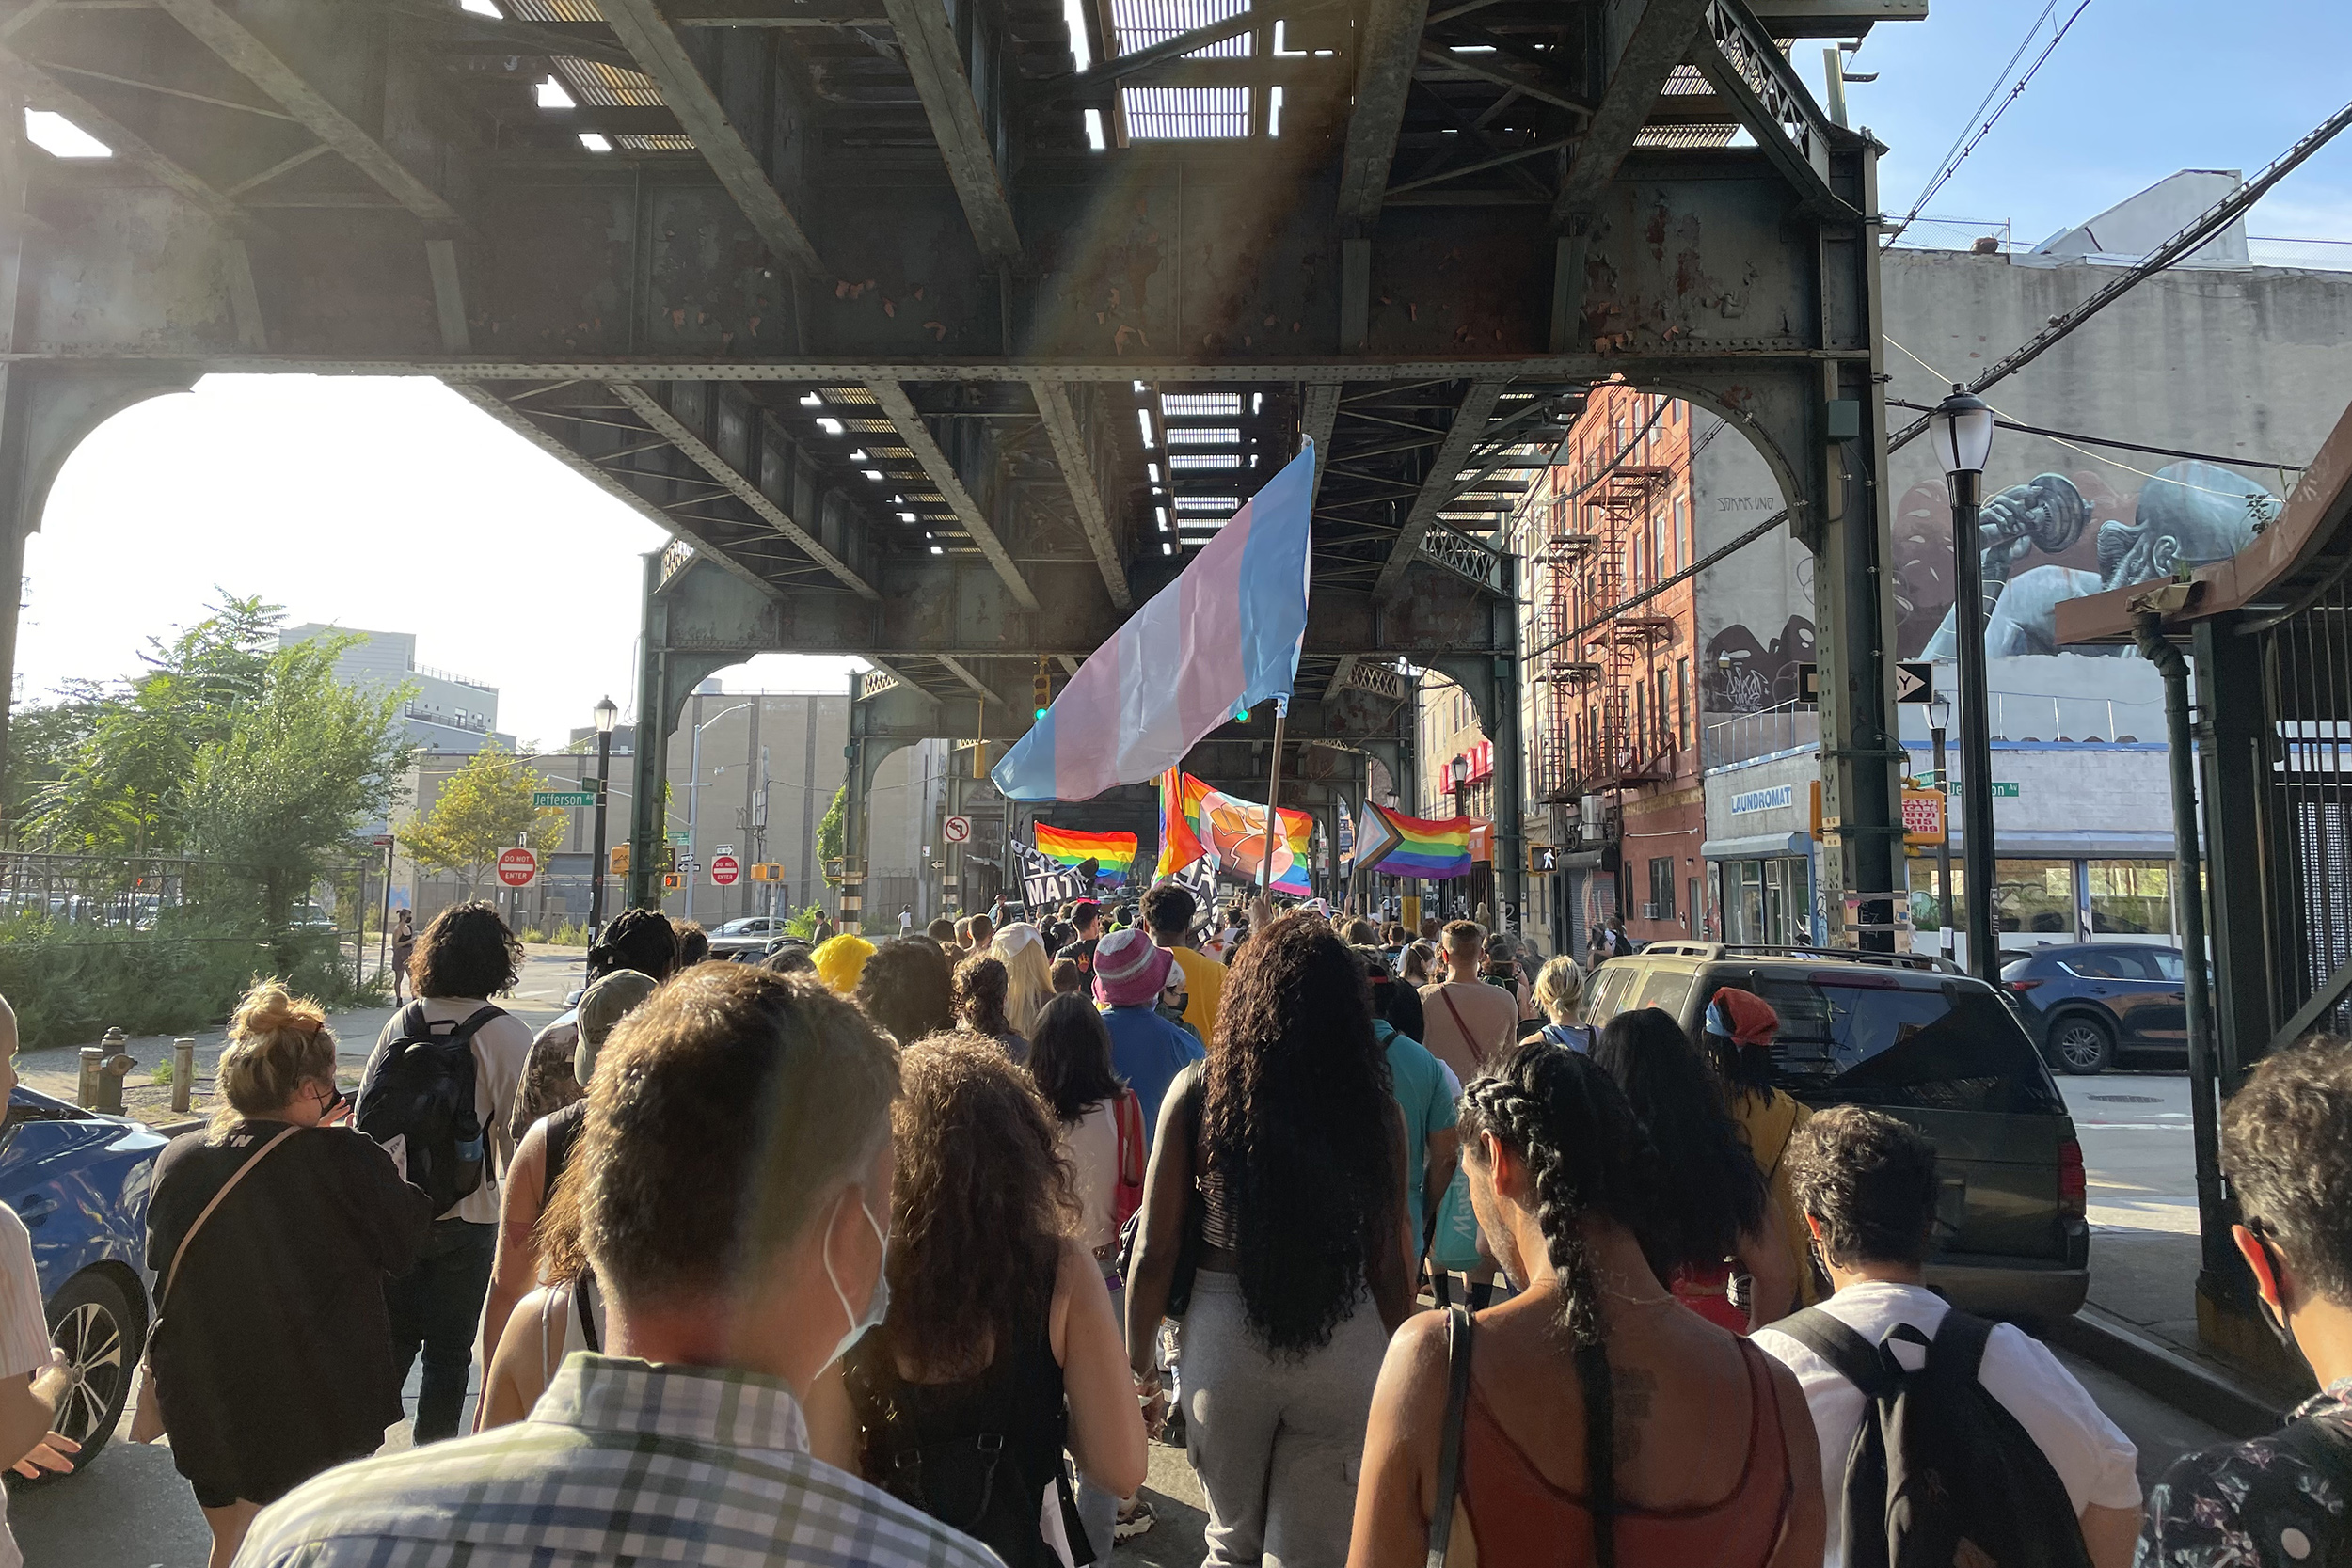 Protesters march in Brooklyn after two men attacked in alleged anti-gay assault